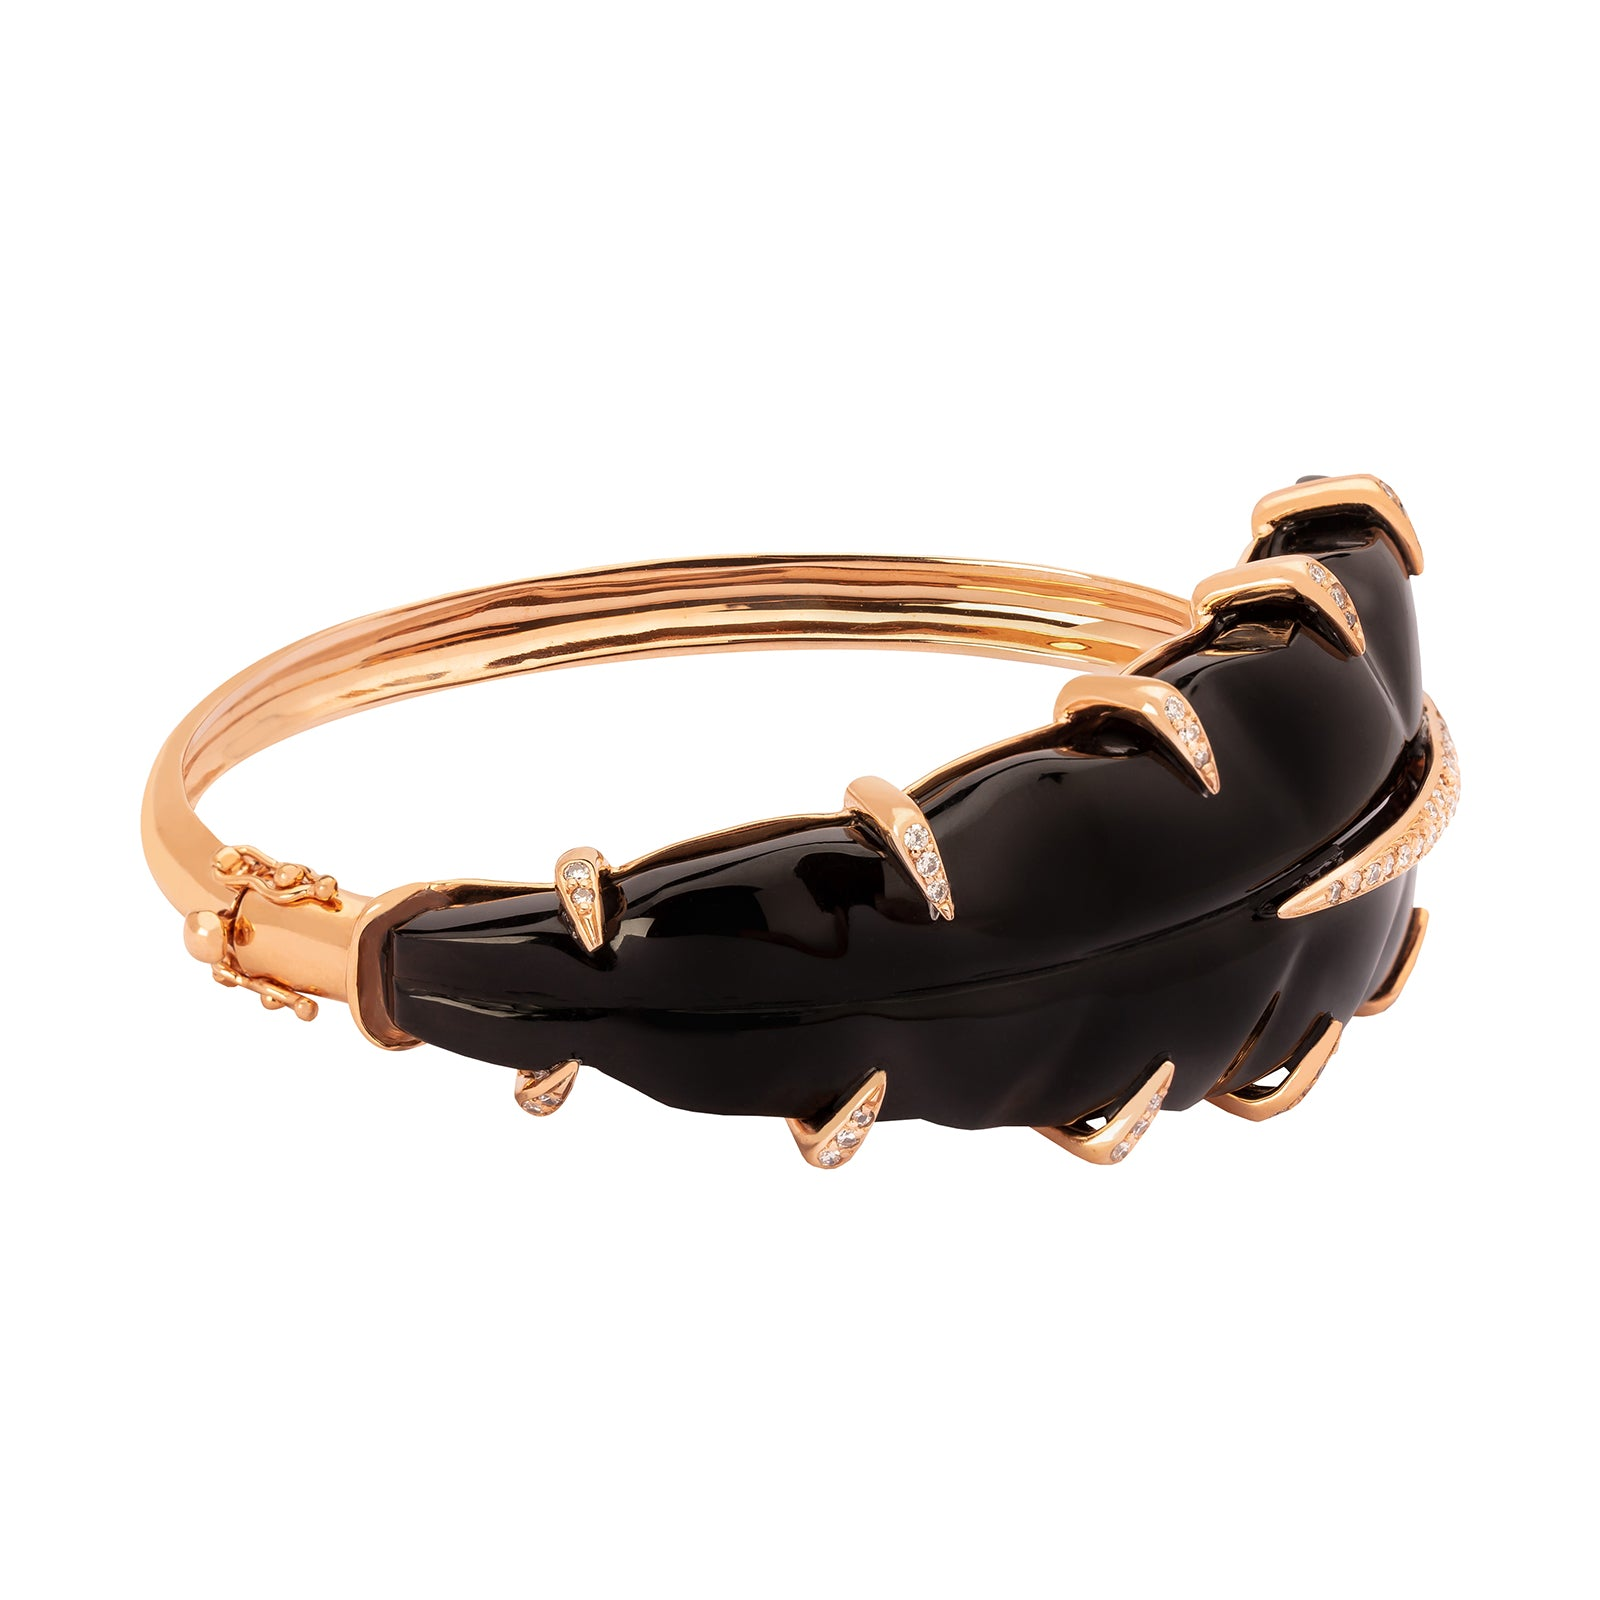 Carla Amorim Encanto Bracelet - Black Quartz - Bracelets - Broken English Jewelry